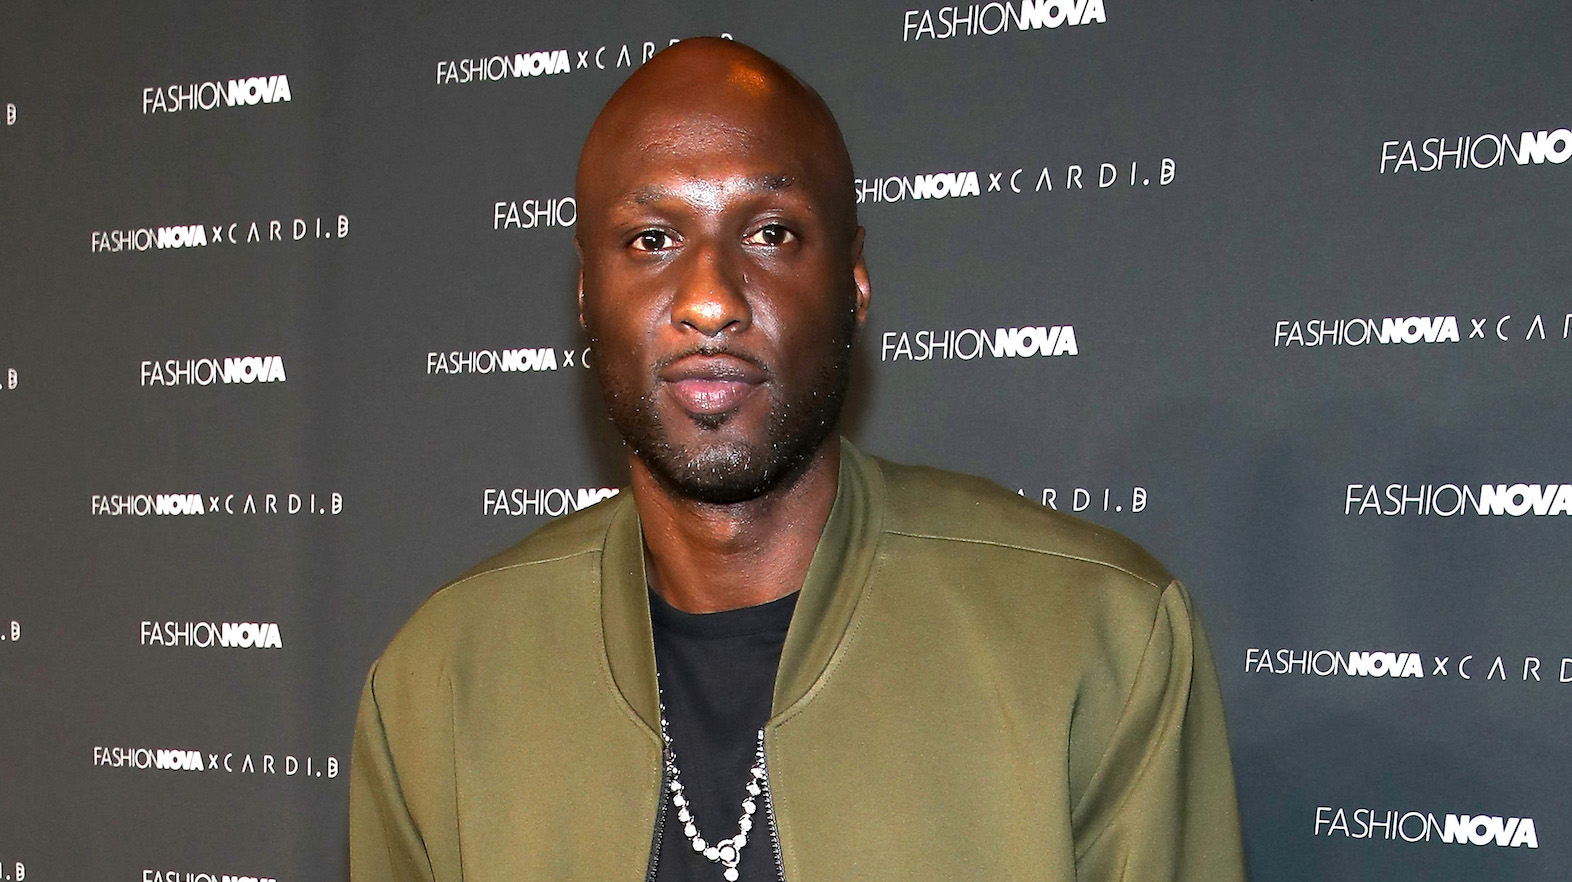 Lamar Odom suffering from Sex Addiction and claims he Slept Over with over 2000 Women